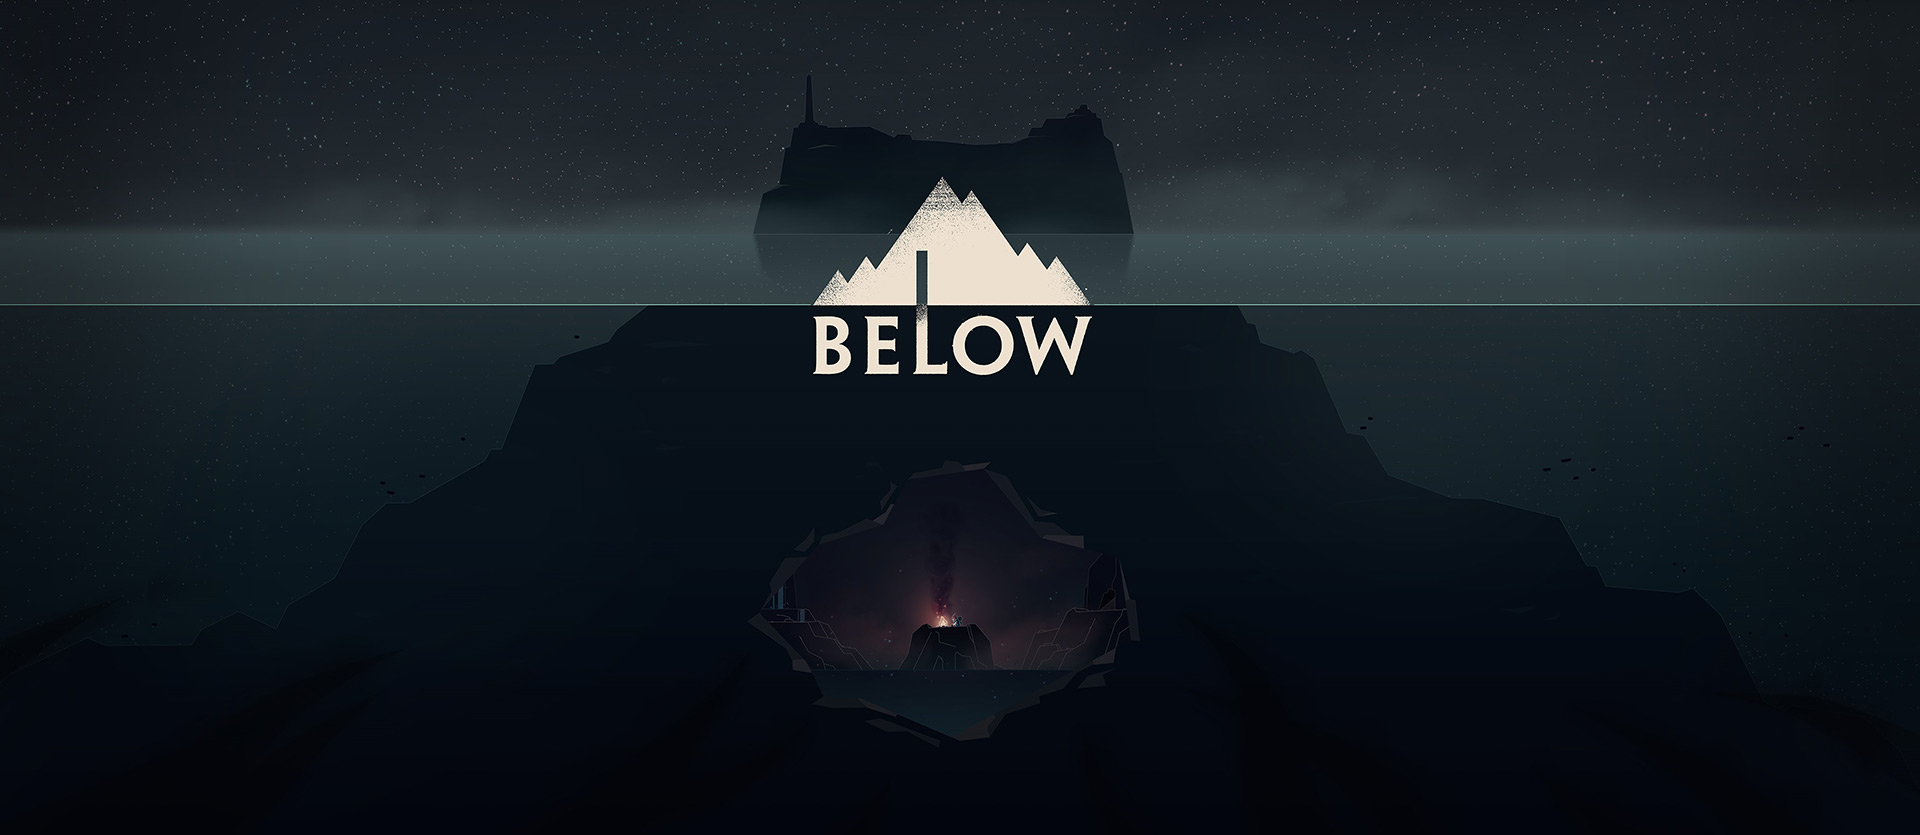 Ø og Below-logo